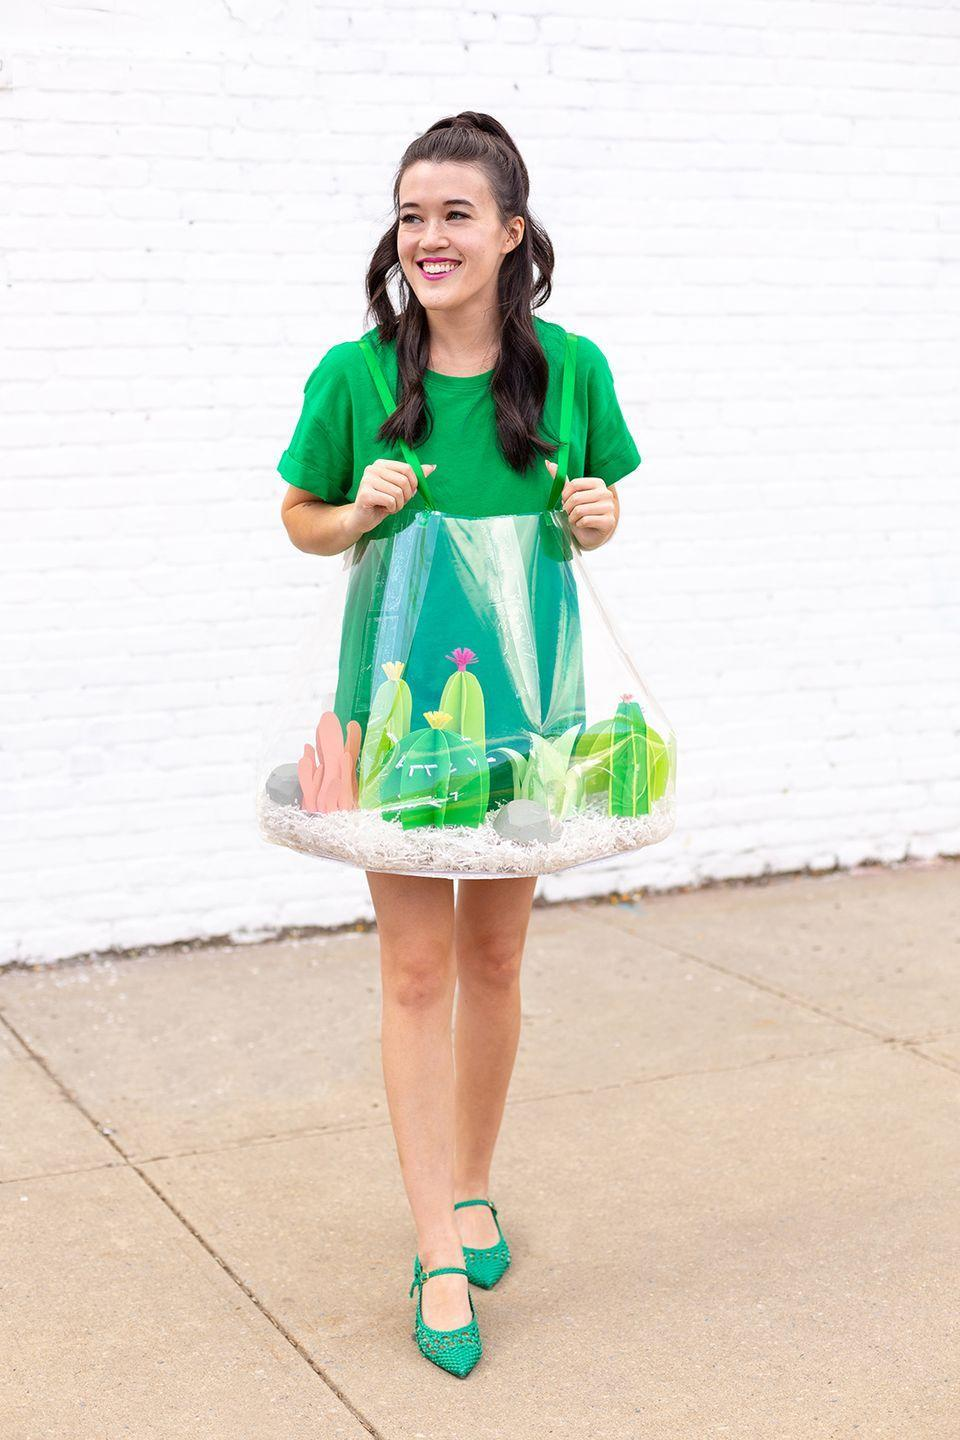 """<p>Show off your green thumb and your crafting skills all at once with this creative plant-inspired getup. </p><p><a class=""""link rapid-noclick-resp"""" href=""""http://www.awwsam.com/2018/10/diy-terrarium-halloween-costume.html"""" rel=""""nofollow noopener"""" target=""""_blank"""" data-ylk=""""slk:GET THE TUTORIAL"""">GET THE TUTORIAL</a></p><p><a class=""""link rapid-noclick-resp"""" href=""""http://www.amazon.com/Amazon-Brand-Ritual-Ballet-Back-T-Shirt/dp/B07YG34V46?tag=syn-yahoo-20&ascsubtag=%5Bartid%7C10072.g.33547559%5Bsrc%7Cyahoo-us"""" rel=""""nofollow noopener"""" target=""""_blank"""" data-ylk=""""slk:SHOP GREEN DRESS"""">SHOP GREEN DRESS</a></p>"""